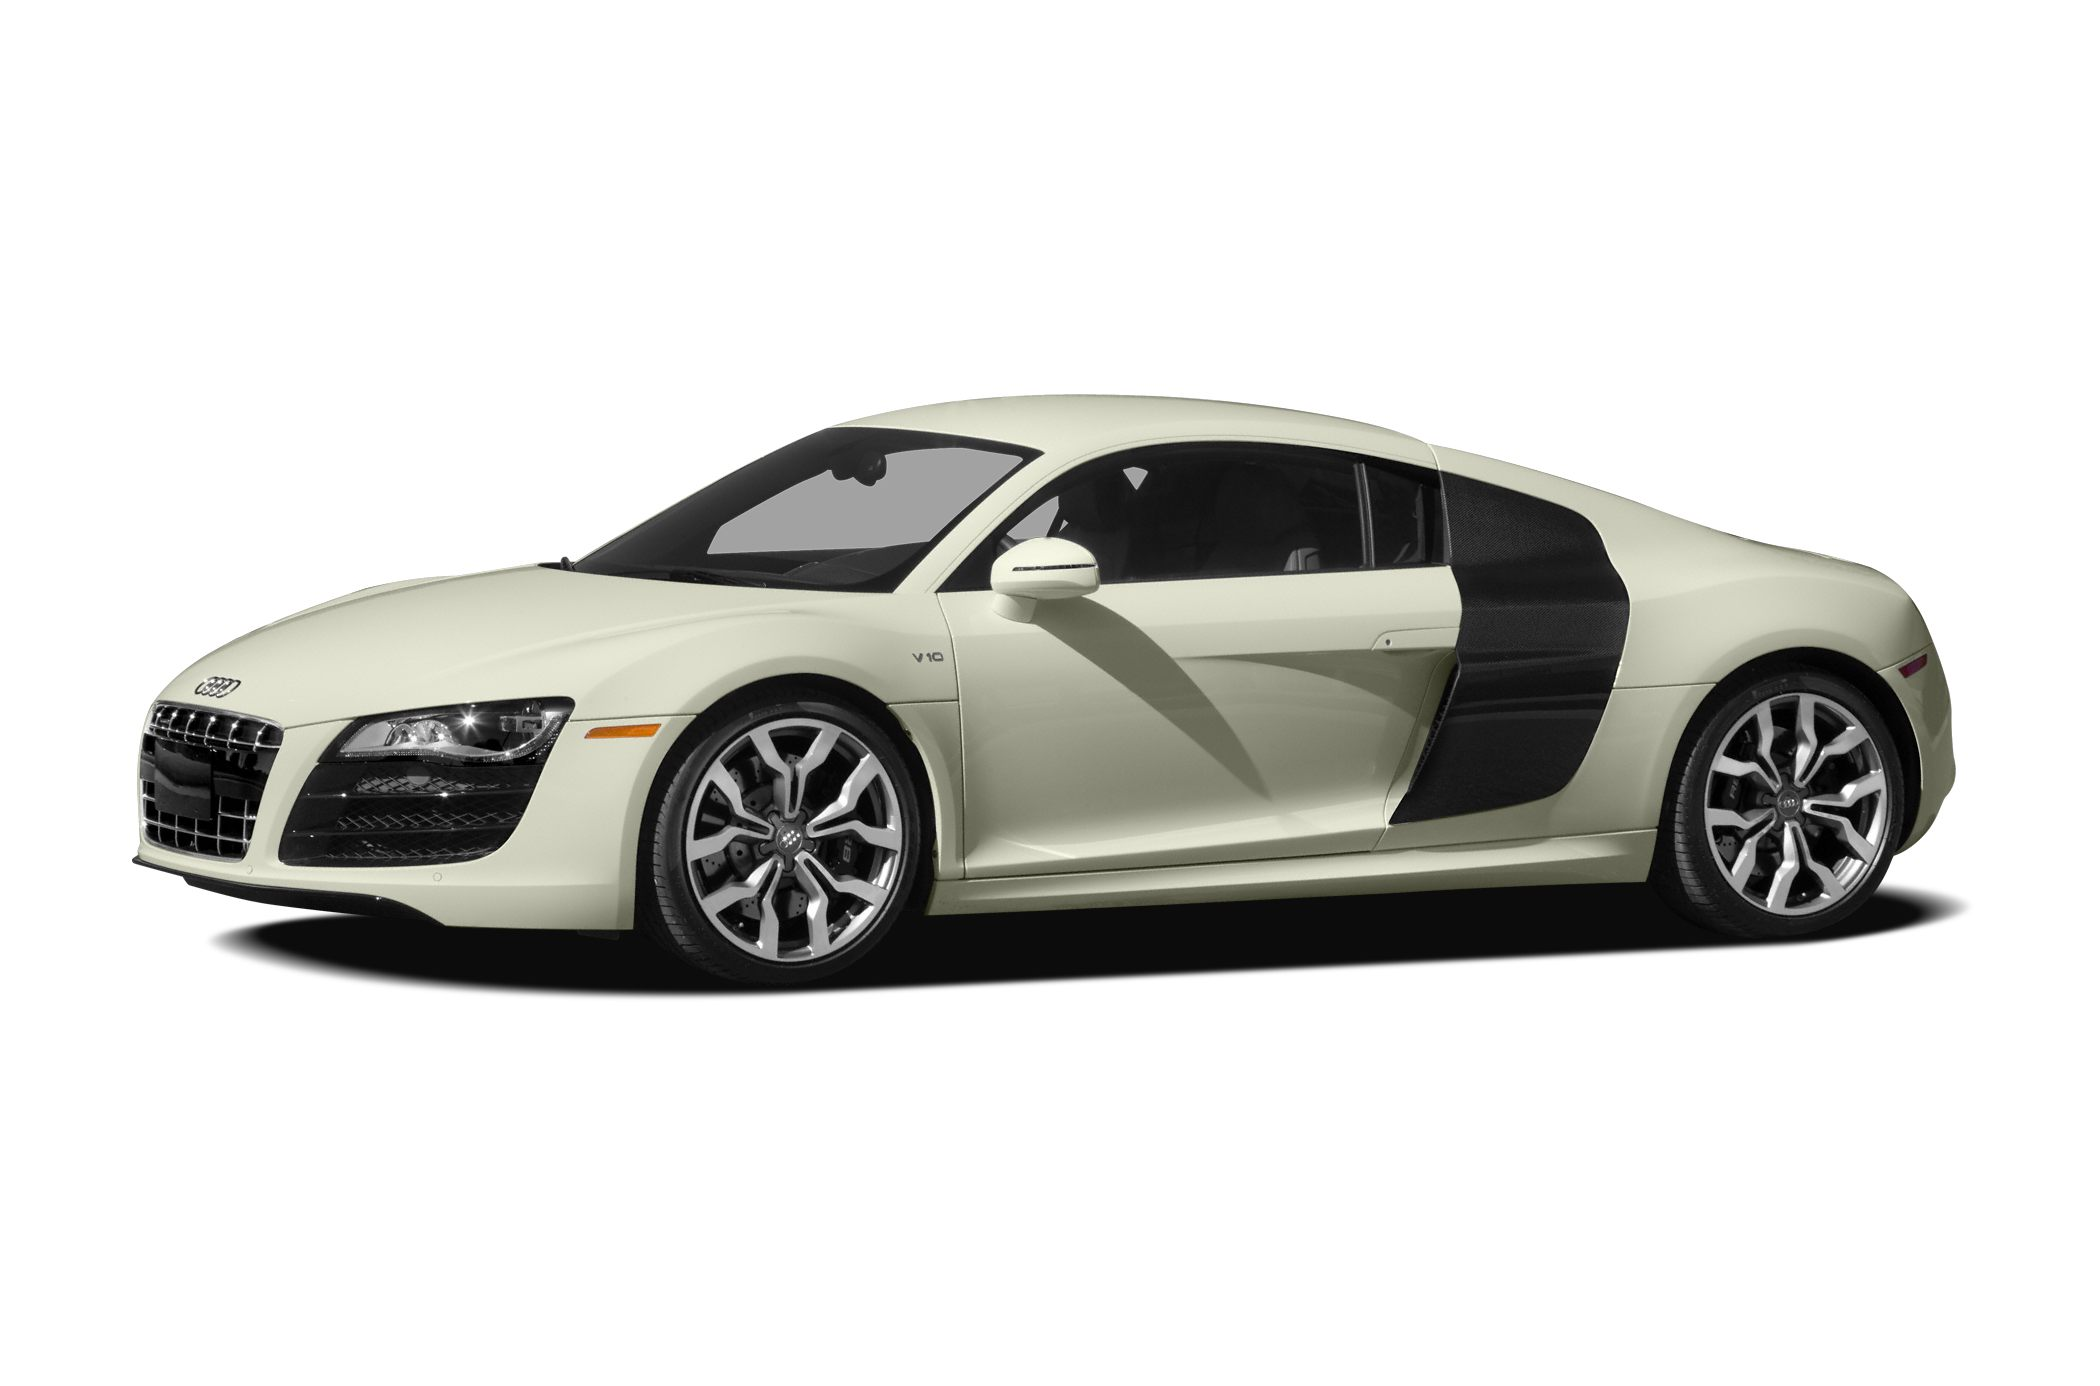 2011 Audi R8 Specs and Prices